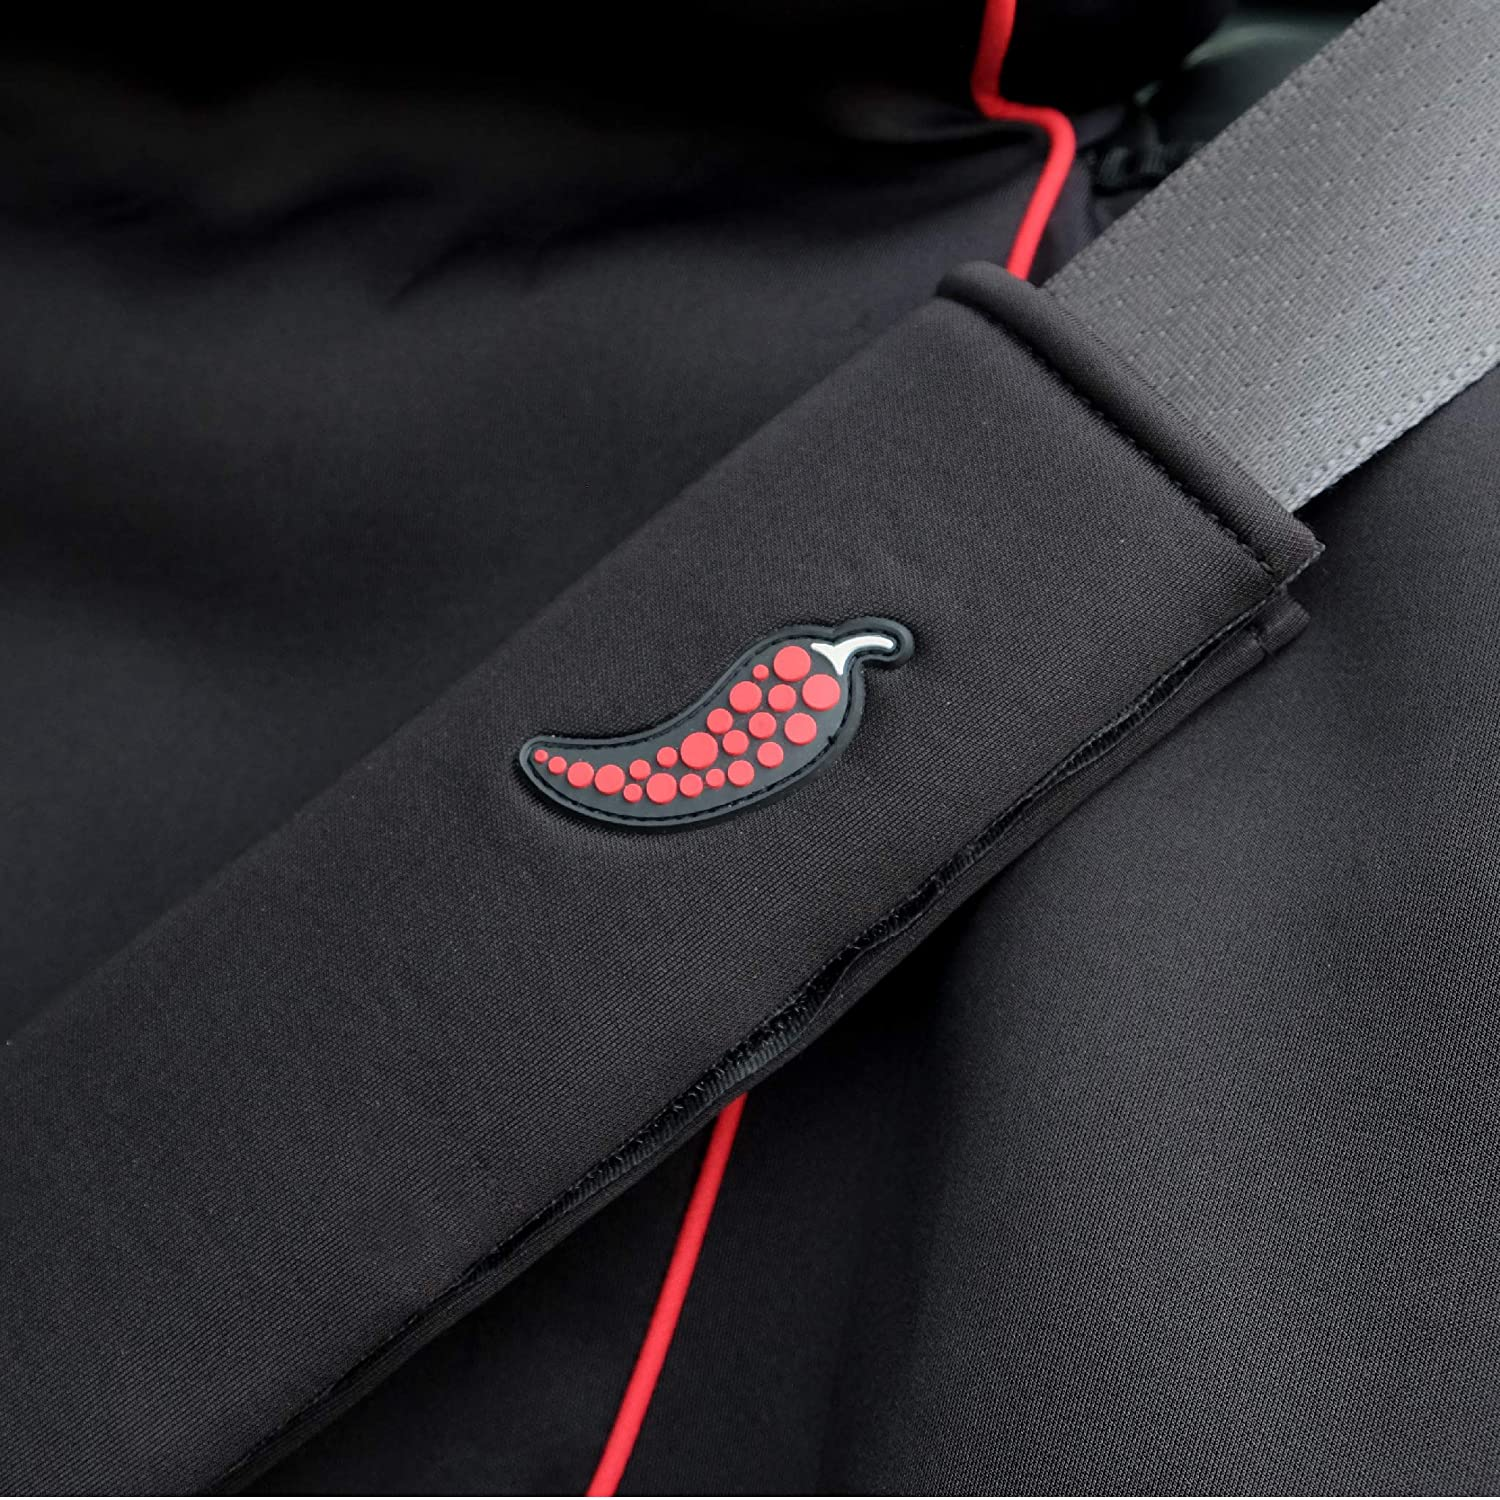 Sweat-Proof - Universal Car Seatbelt Pad Shoulder Strap XL - Long, Black and Blue Smoke Shoulder Pad Car Safety Belt Cover Spice Wrap Seat Belt Cover Easy to Clean and Soft Against Skin